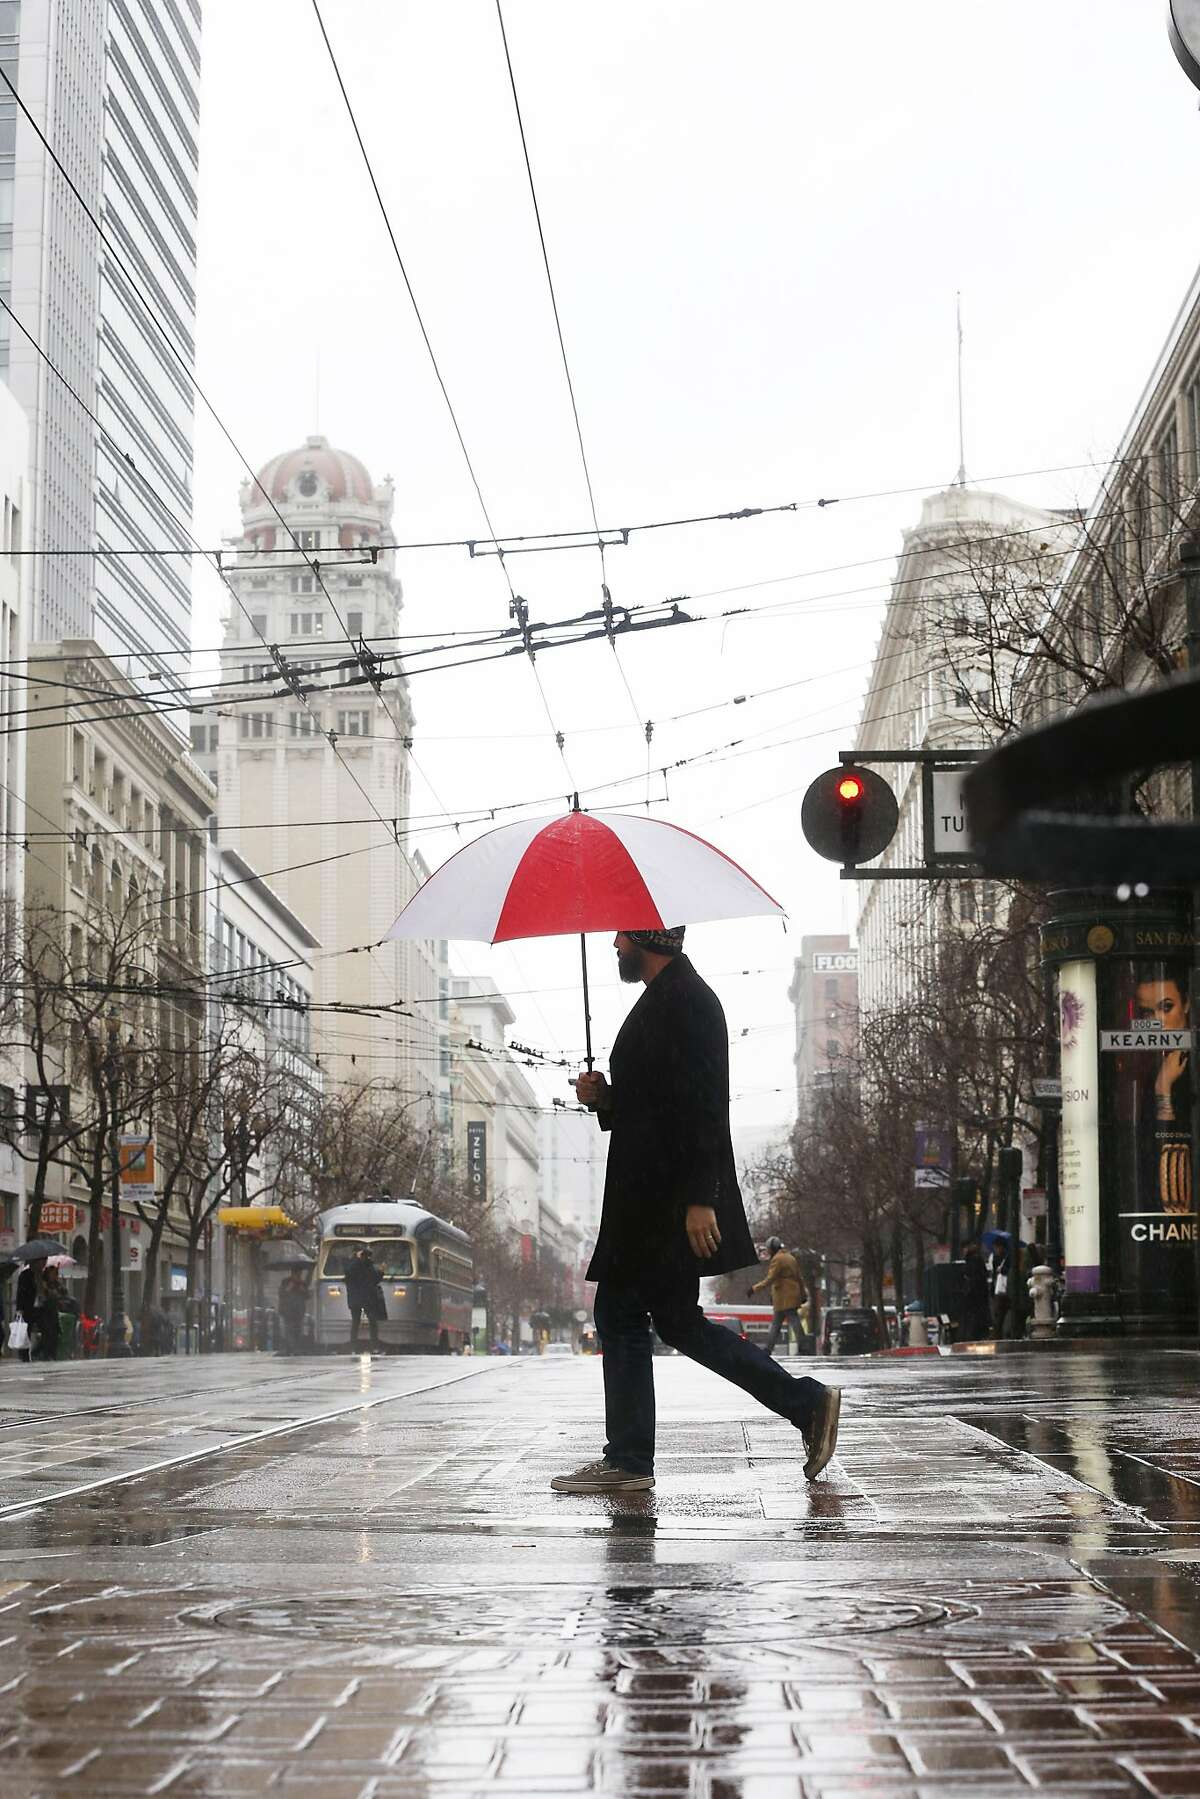 Daniel Sisson of San Francisco stays dry under his umbrella as he crosses Market Street to get some lunch on Tuesday, January 15, 2019 in San Francisco, Calif.